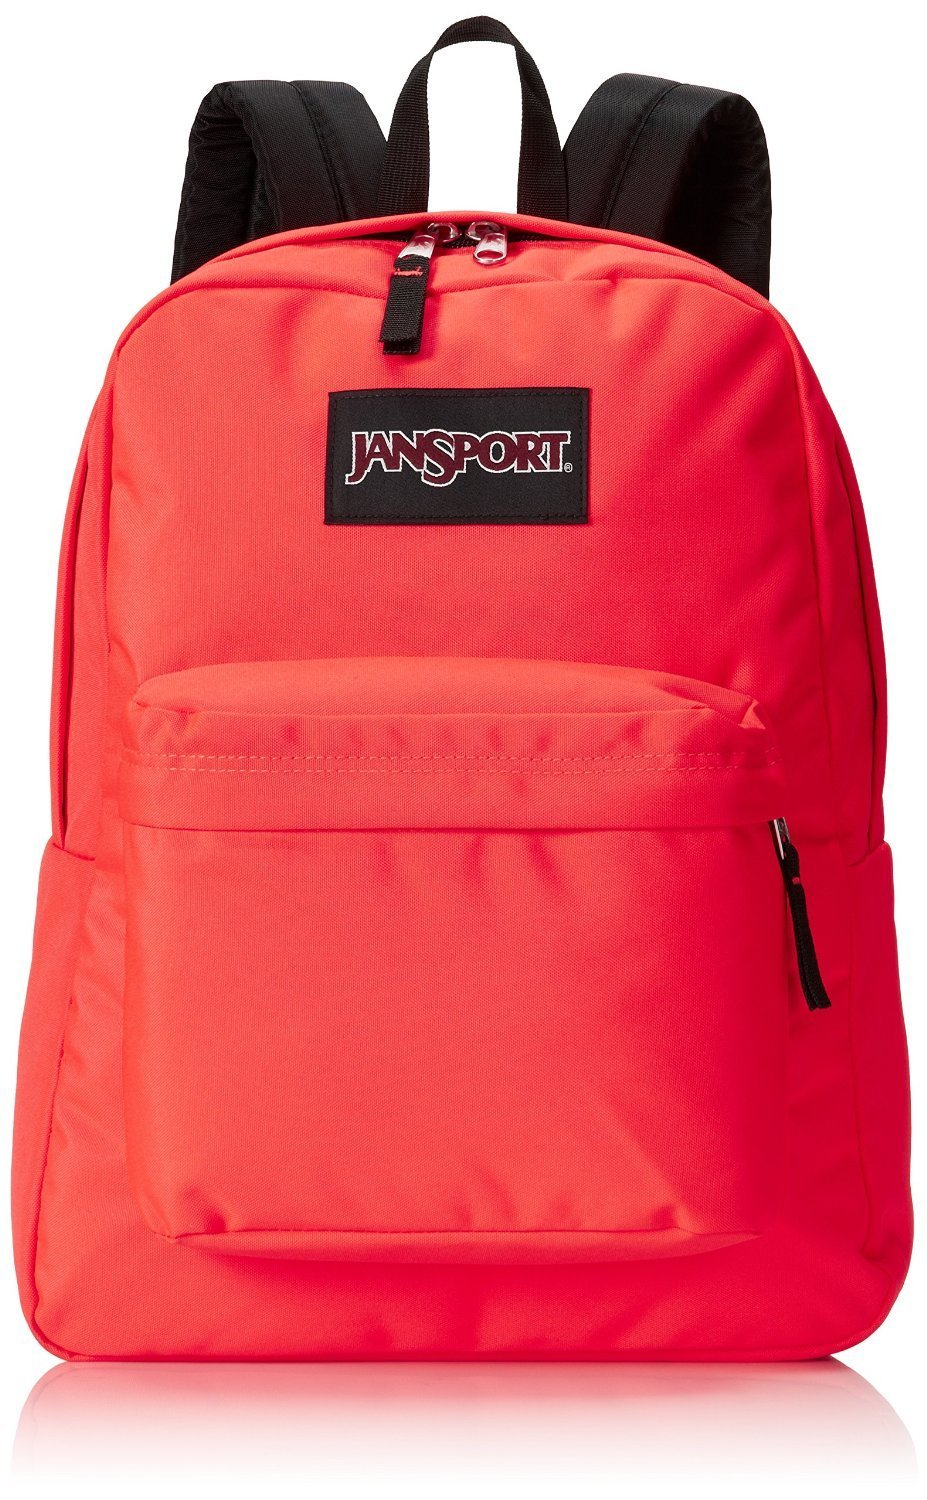 78359a84f Cheap Jansport Classic Backpack, find Jansport Classic Backpack ...